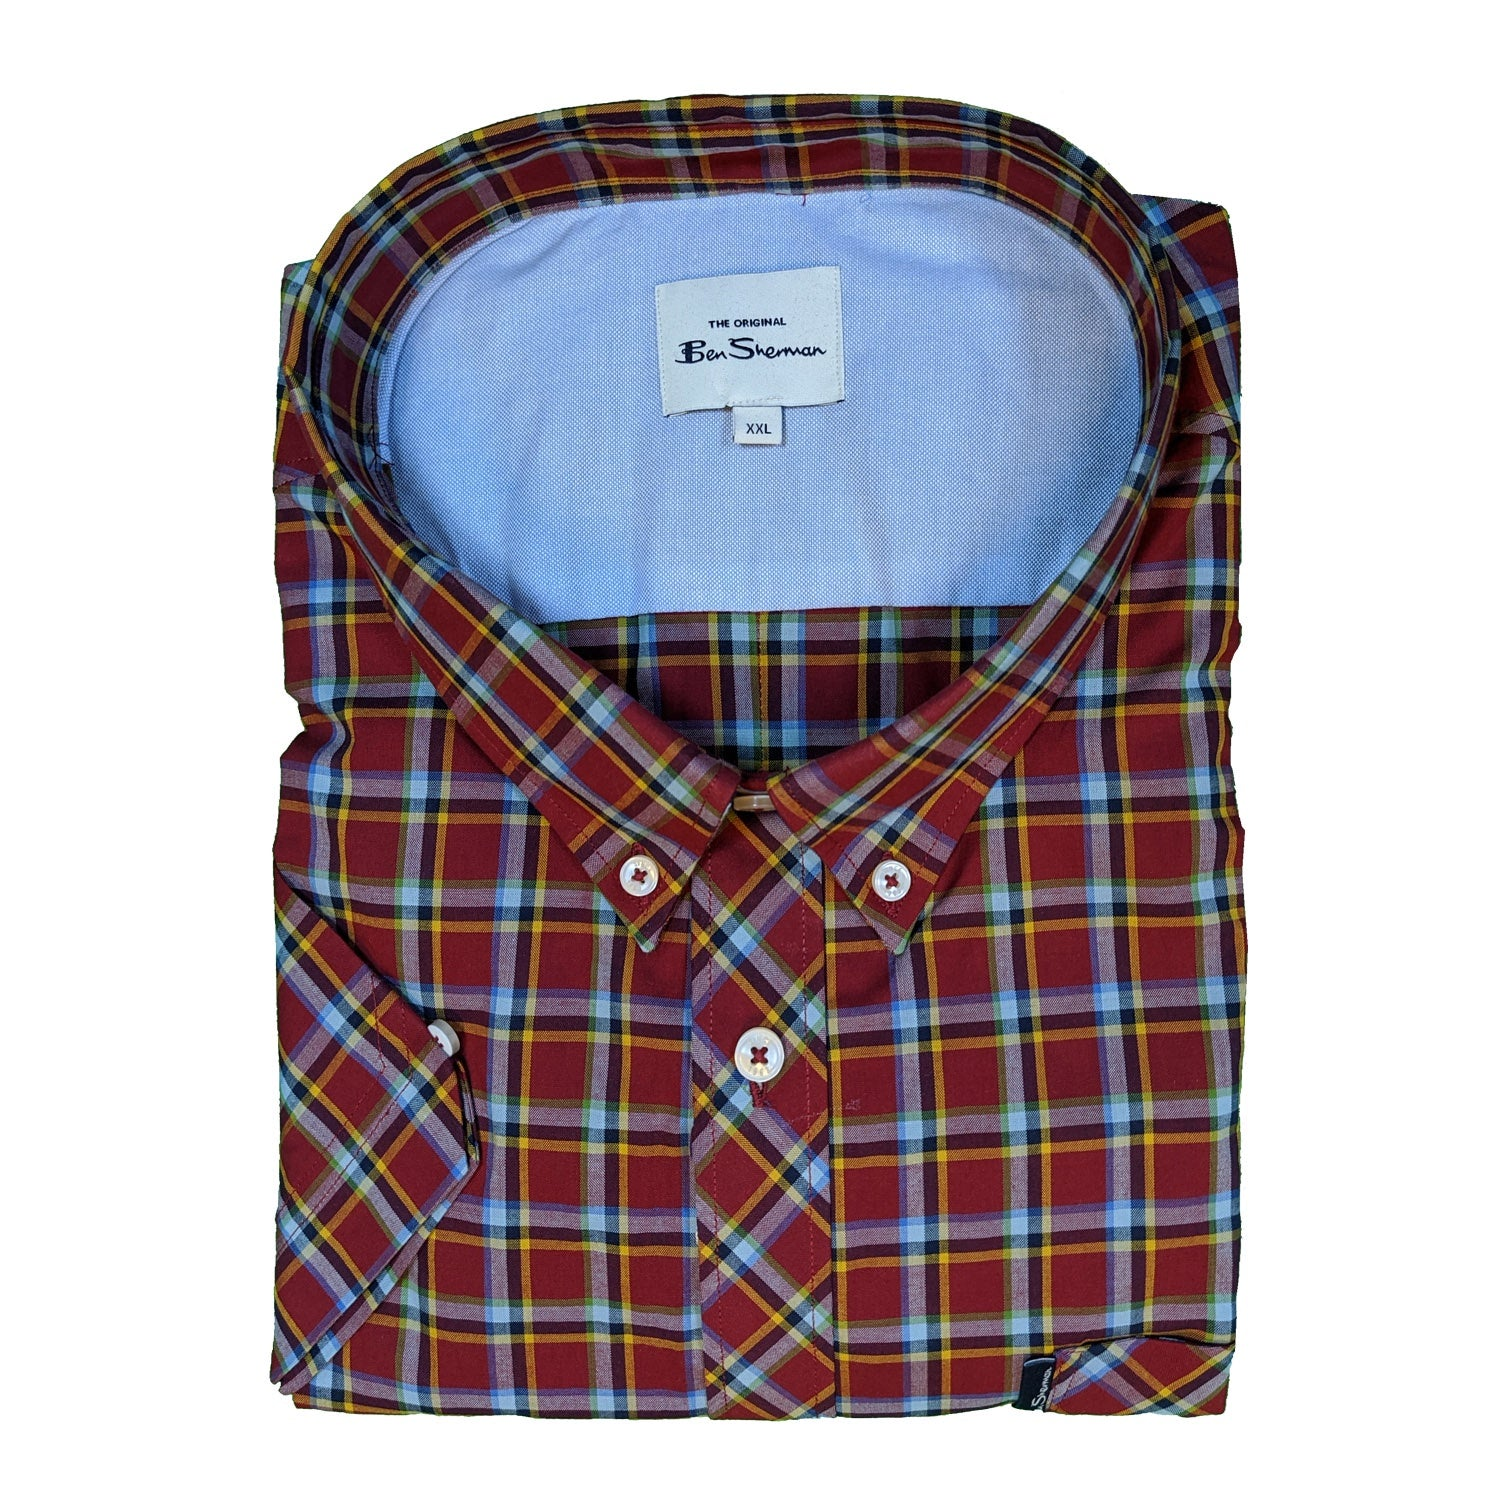 Ben Sherman S/S Shirt - 0059086IL - Red 1